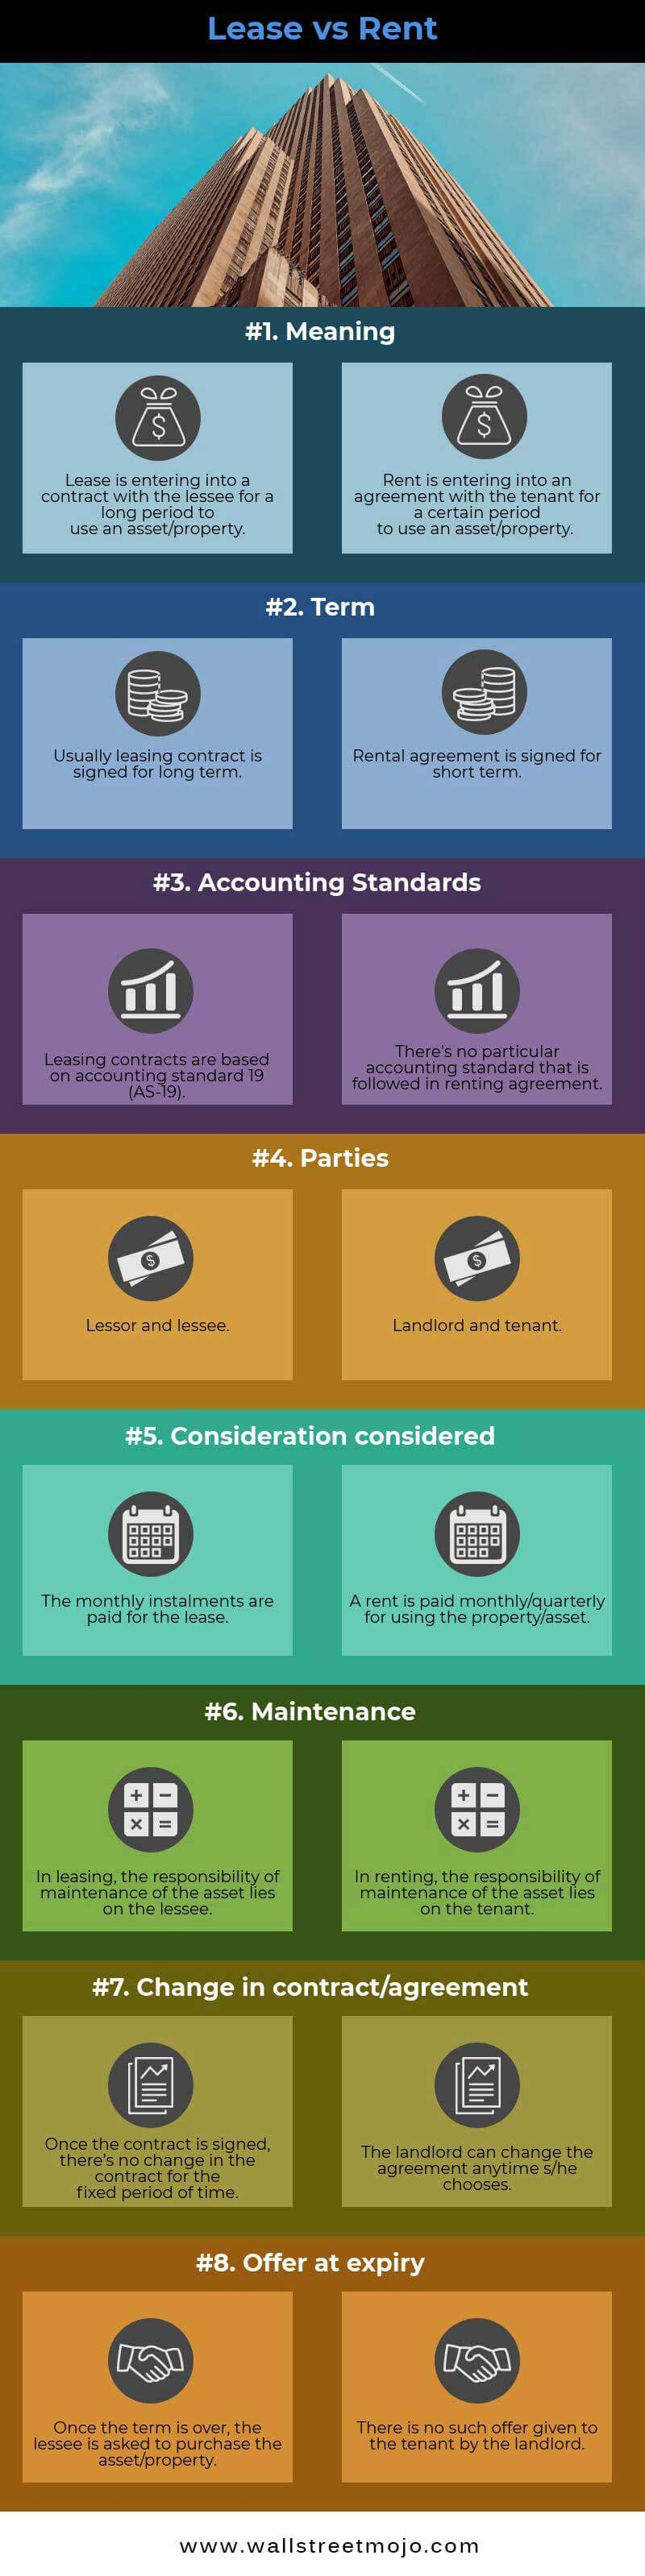 Lease Vs Rent Top 8 Differences You Must Know With Infographics